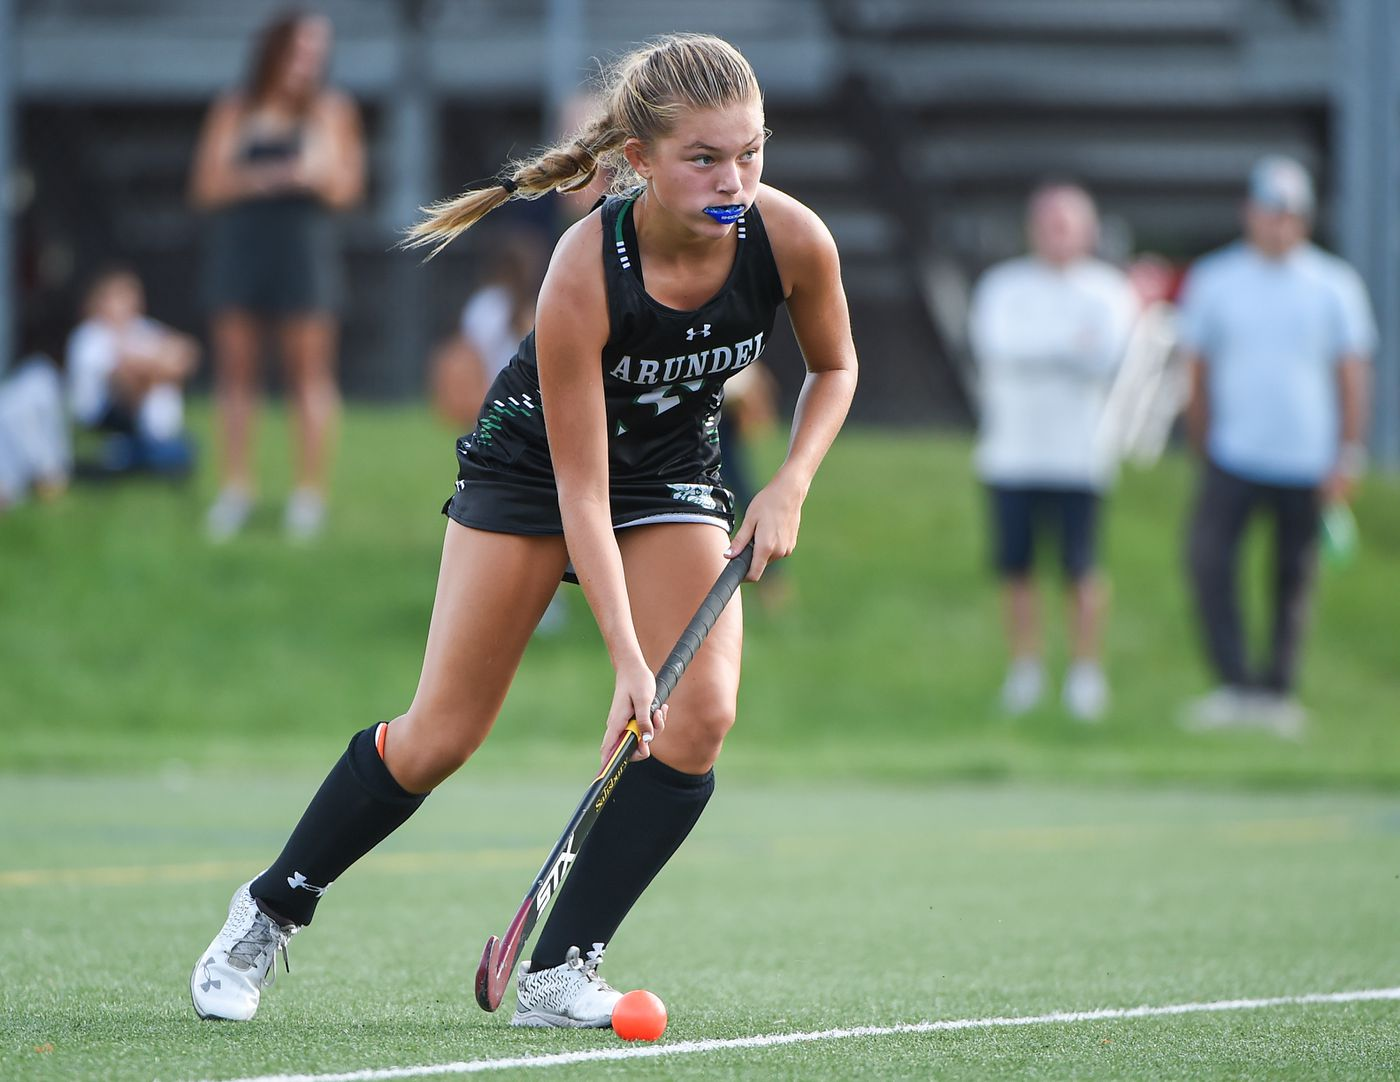 Arundel's Madison Barber (5) makes his way through the field in the 3rd period.  Archbishop Spalding will host field hockey at Arundel High School on Thursday, September 10, beating them 5-1 in regular time.  09.09.21